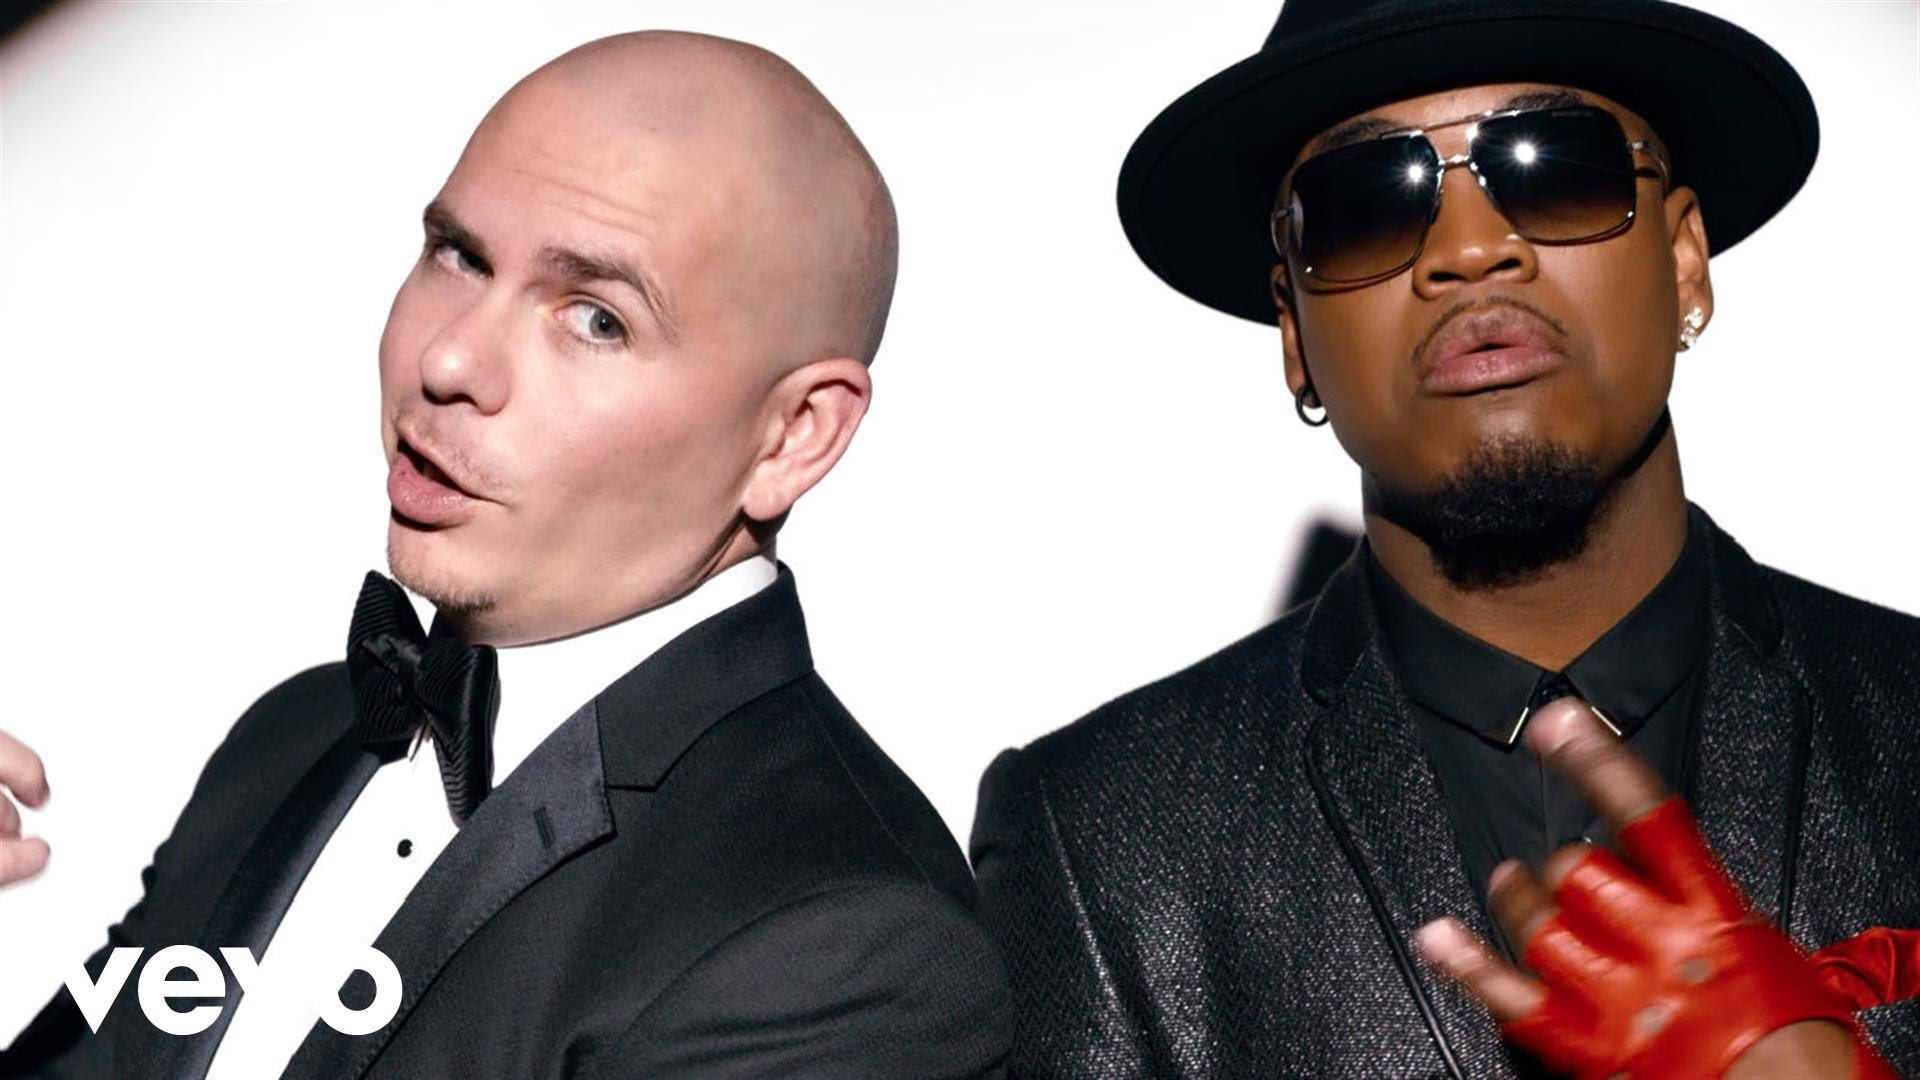 5 best Pitbull lyrics